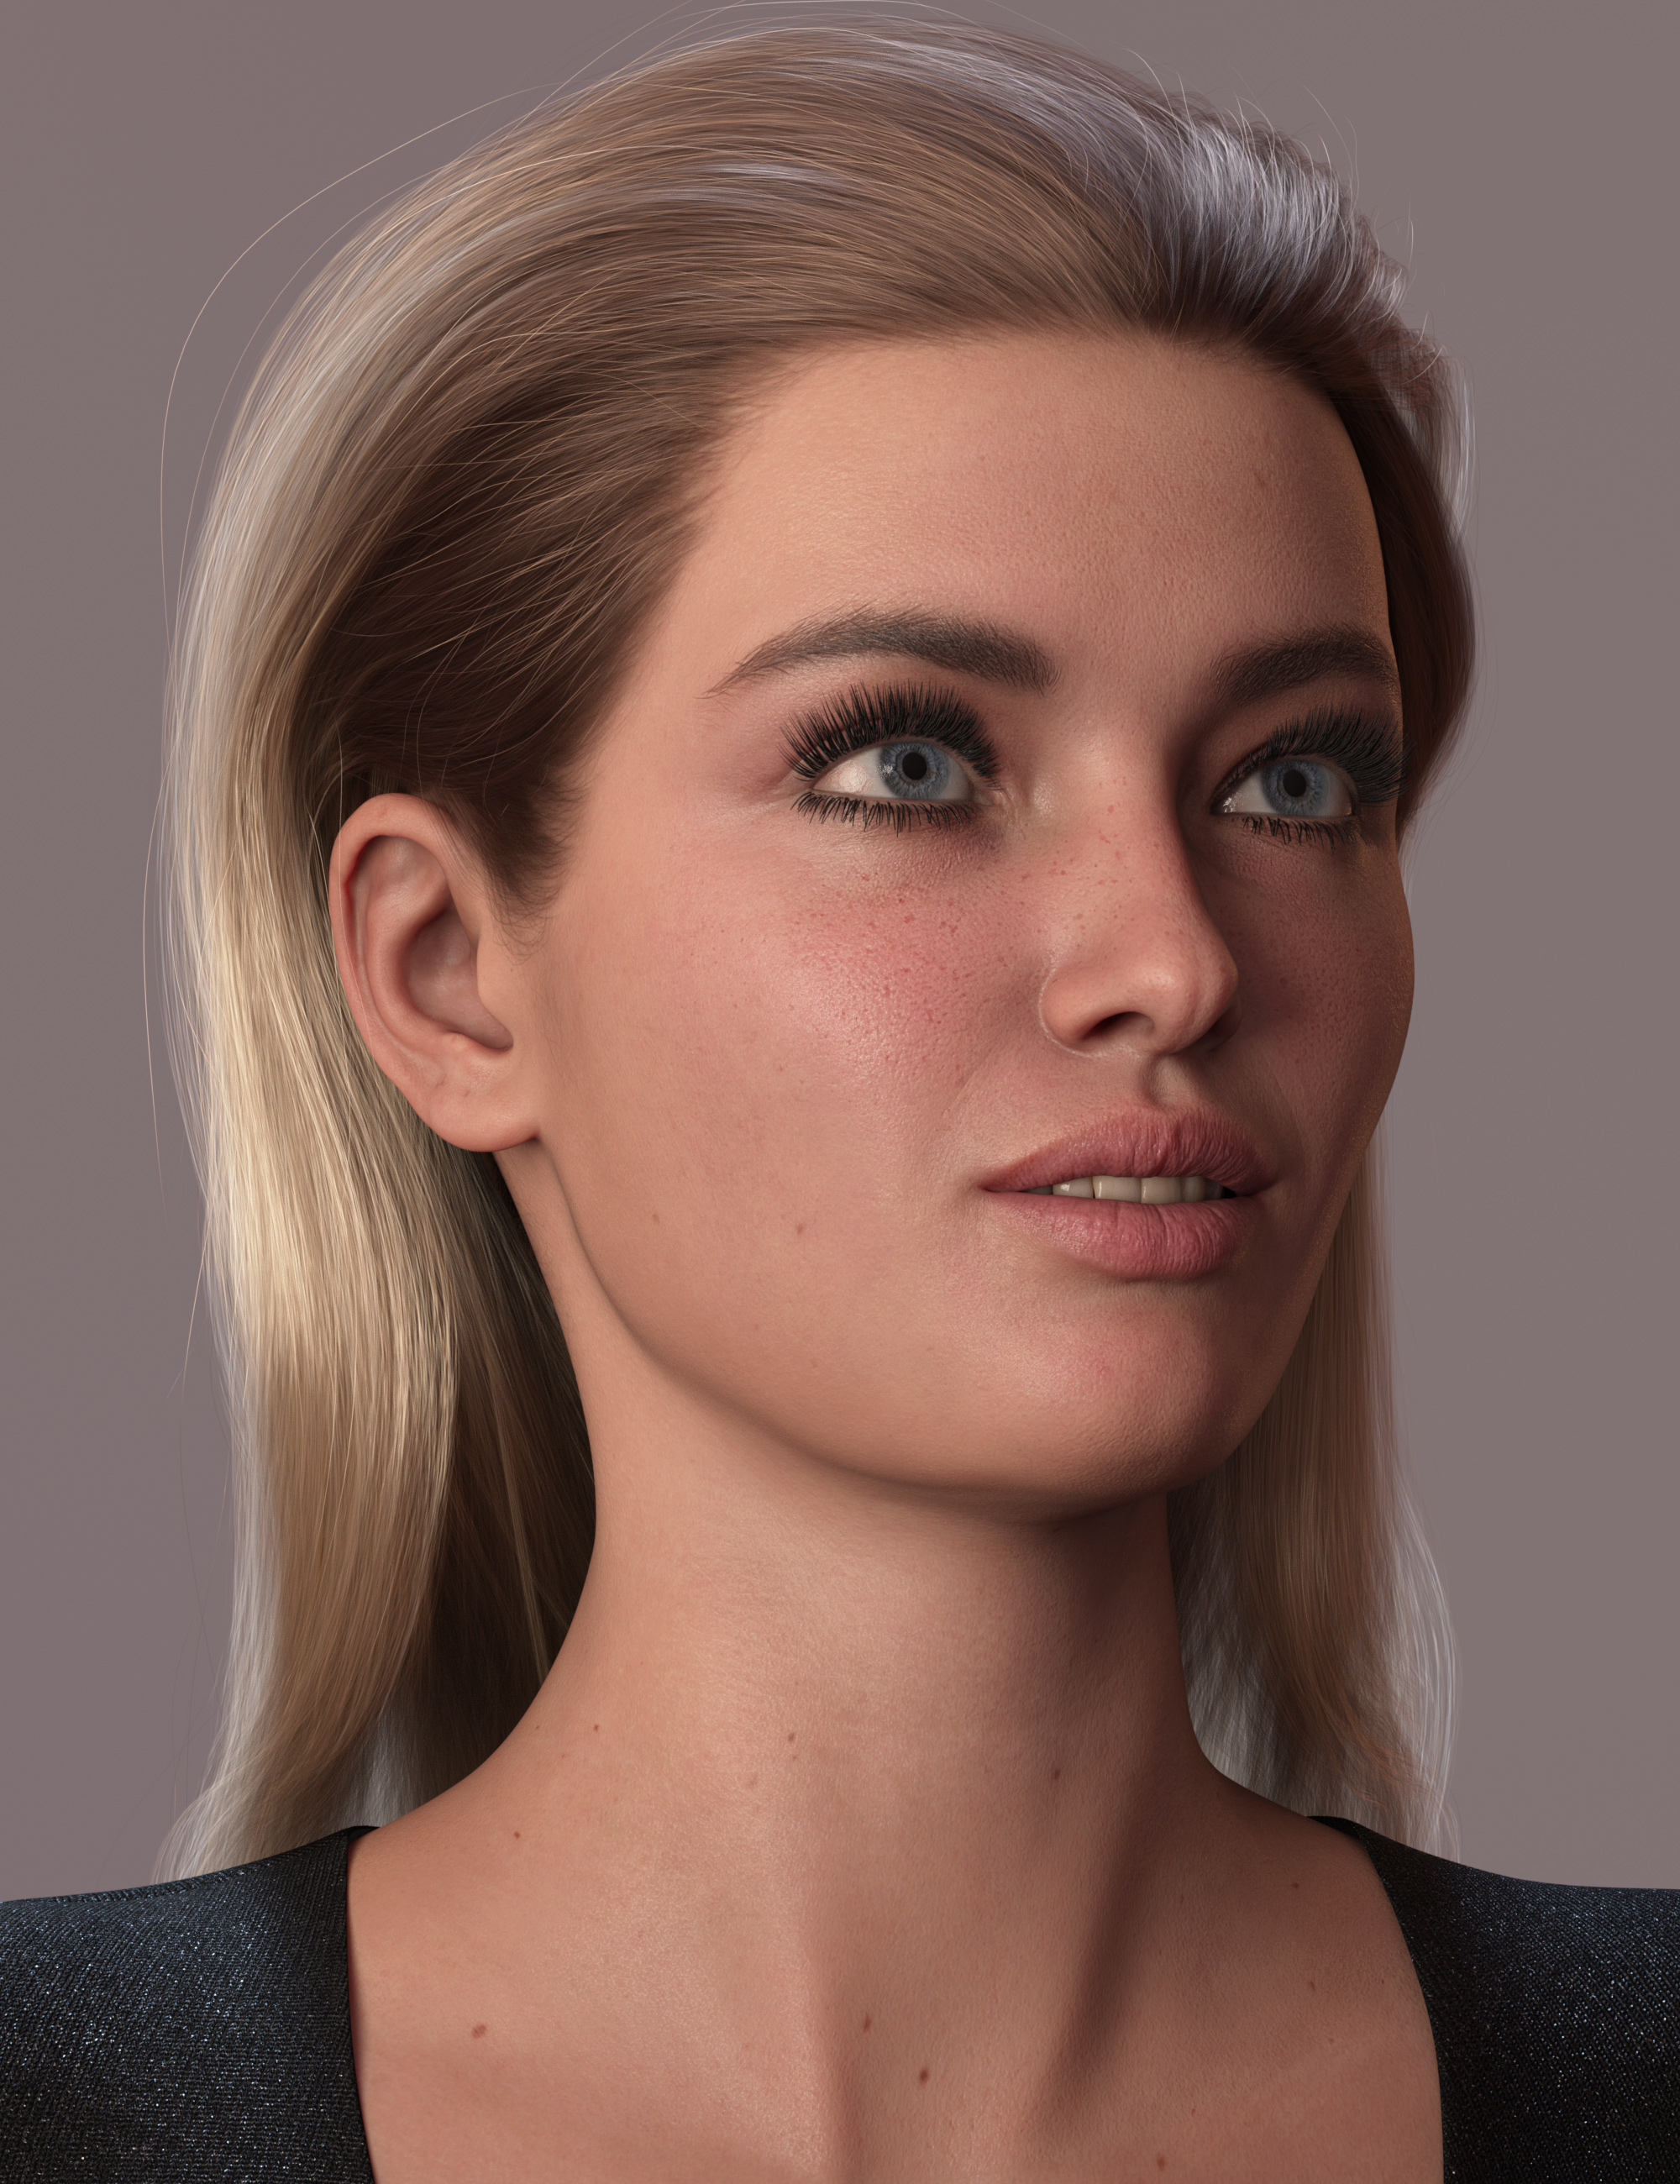 2021-04 Hair for Genesis 8 and 8.1 Females by: outoftouch, 3D Models by Daz 3D